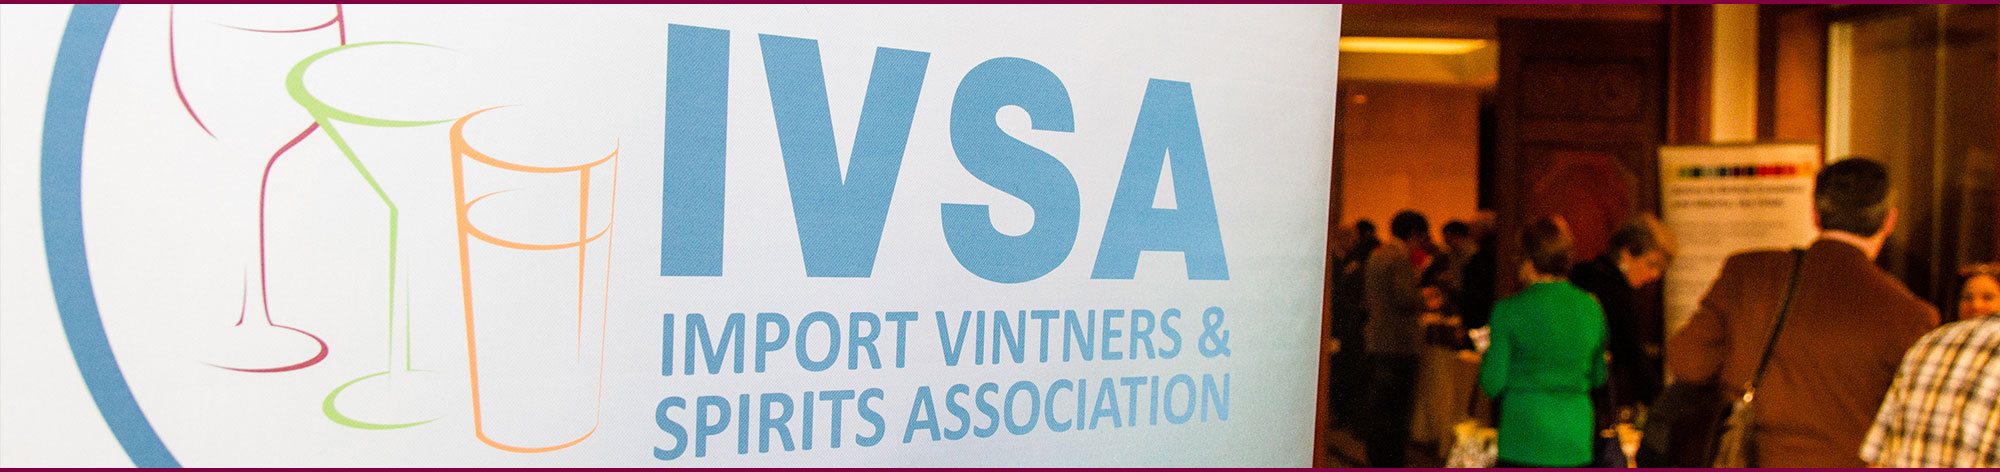 IVSA trade event display graphic